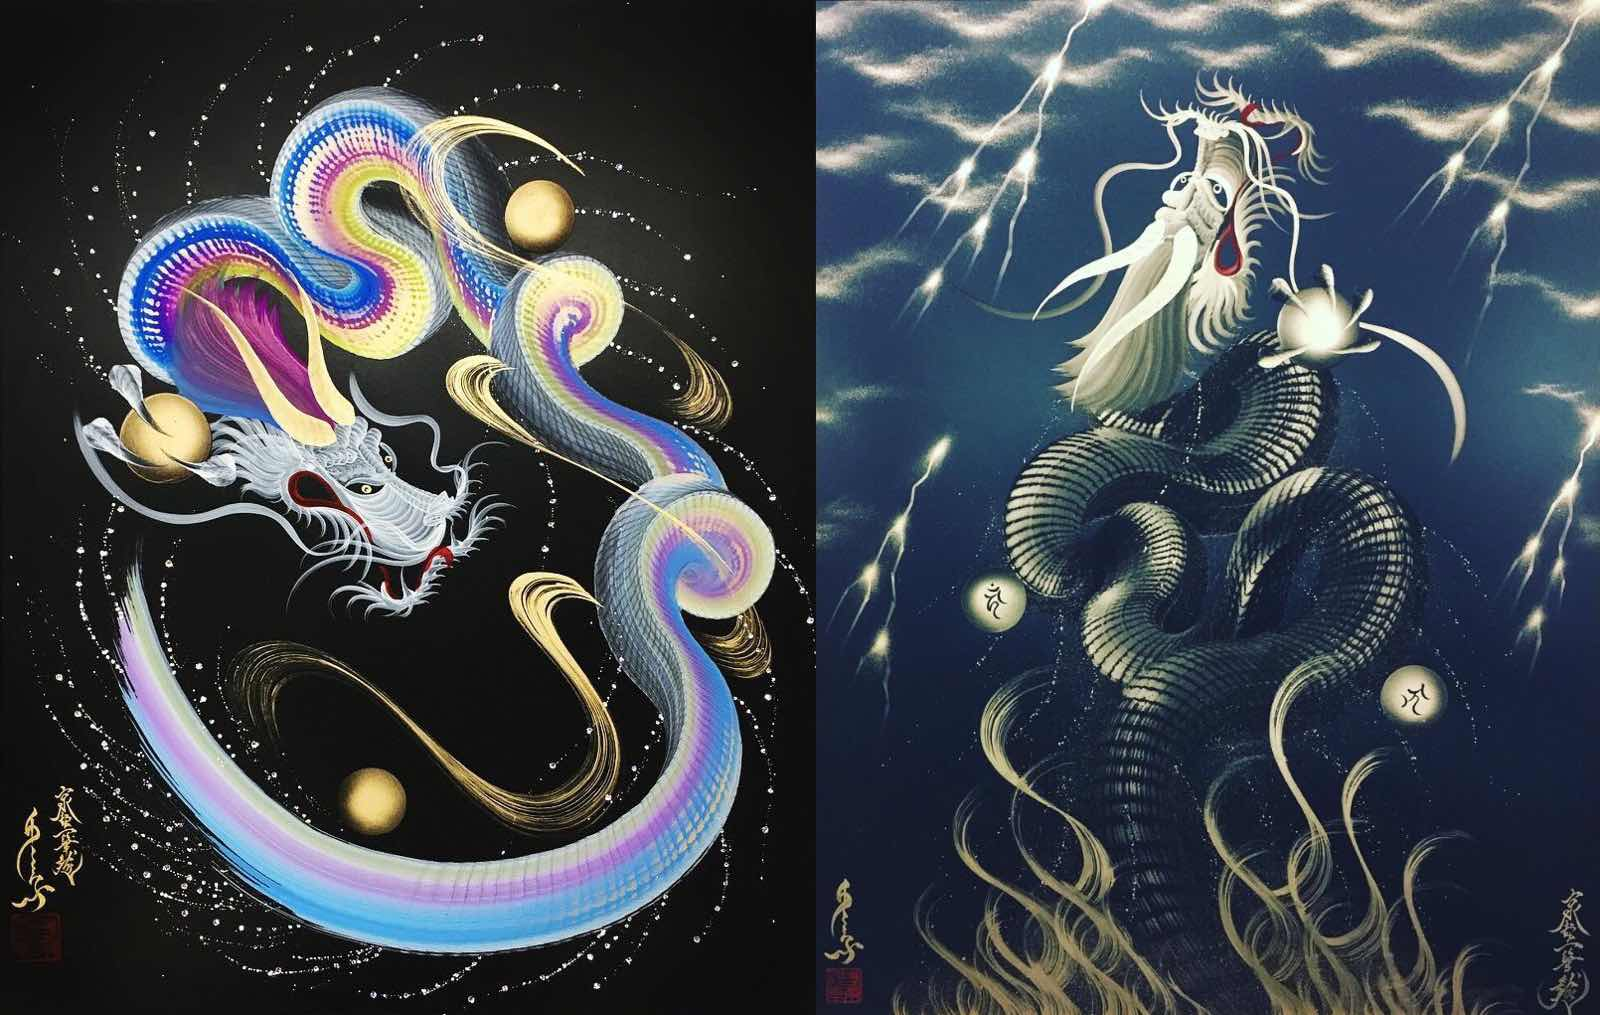 Paintings by Keisuke Teshima (Instagram: @onestrokedragon)